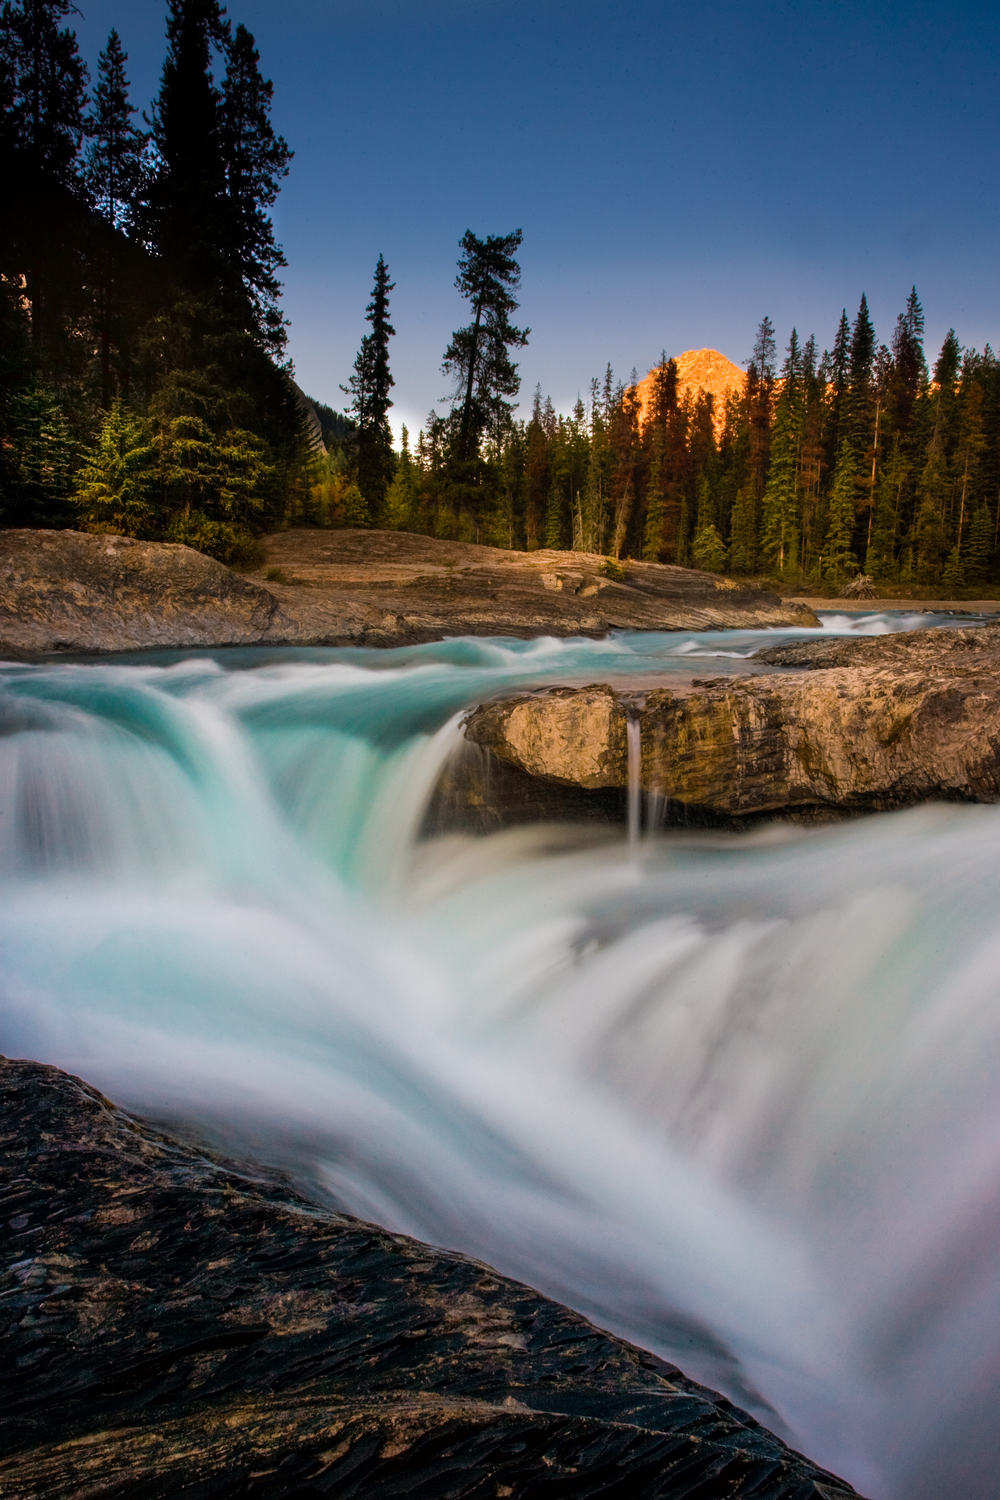 Kicking Horse River, Yoho National Park, as it begins to drop into Natural Bridge.